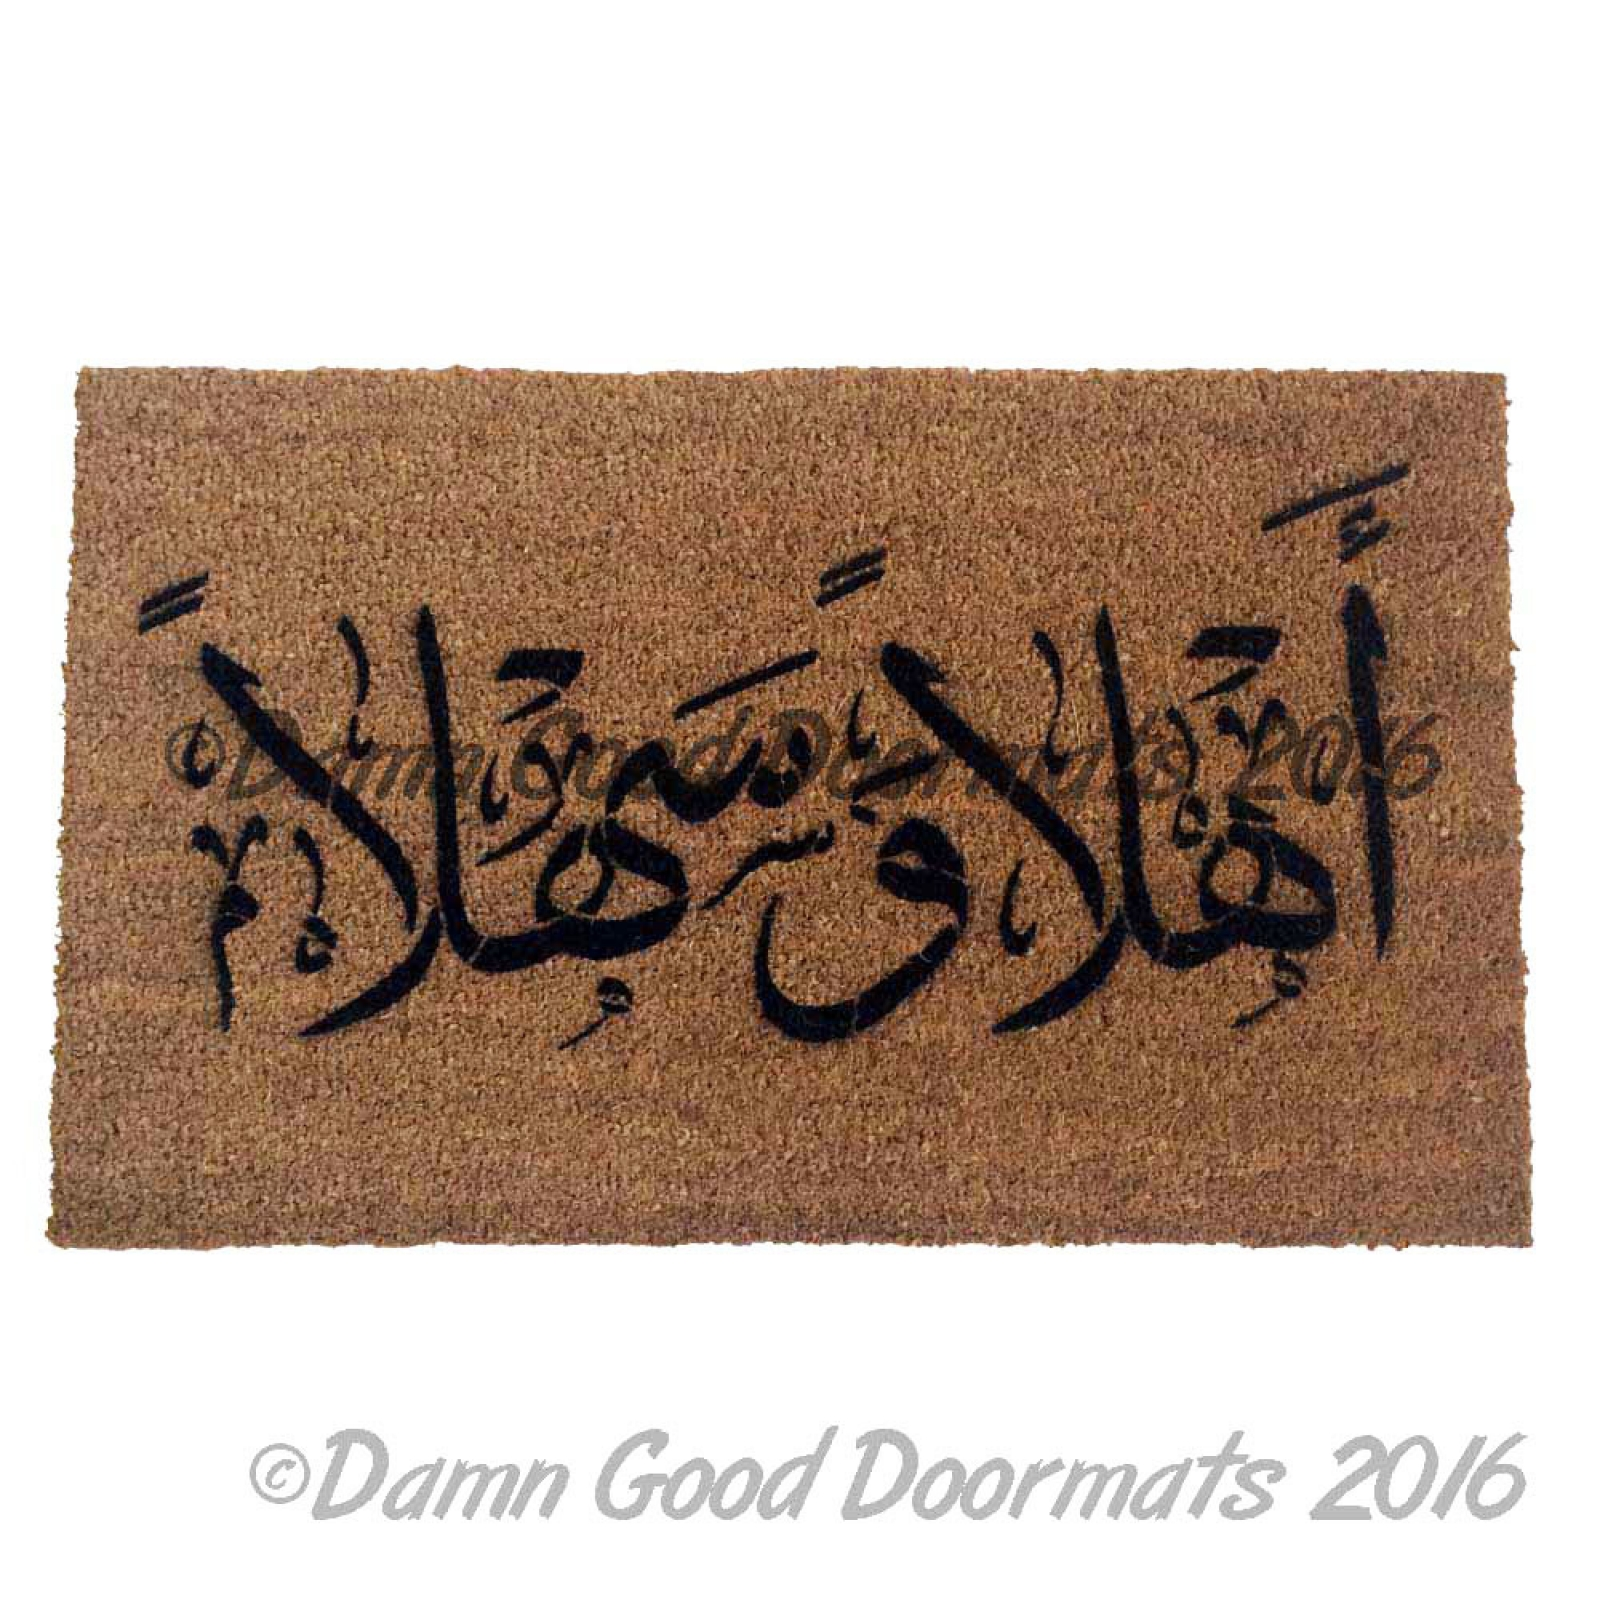 Tervetuloa Finnish Welcome Doormat Damn Good Doormats